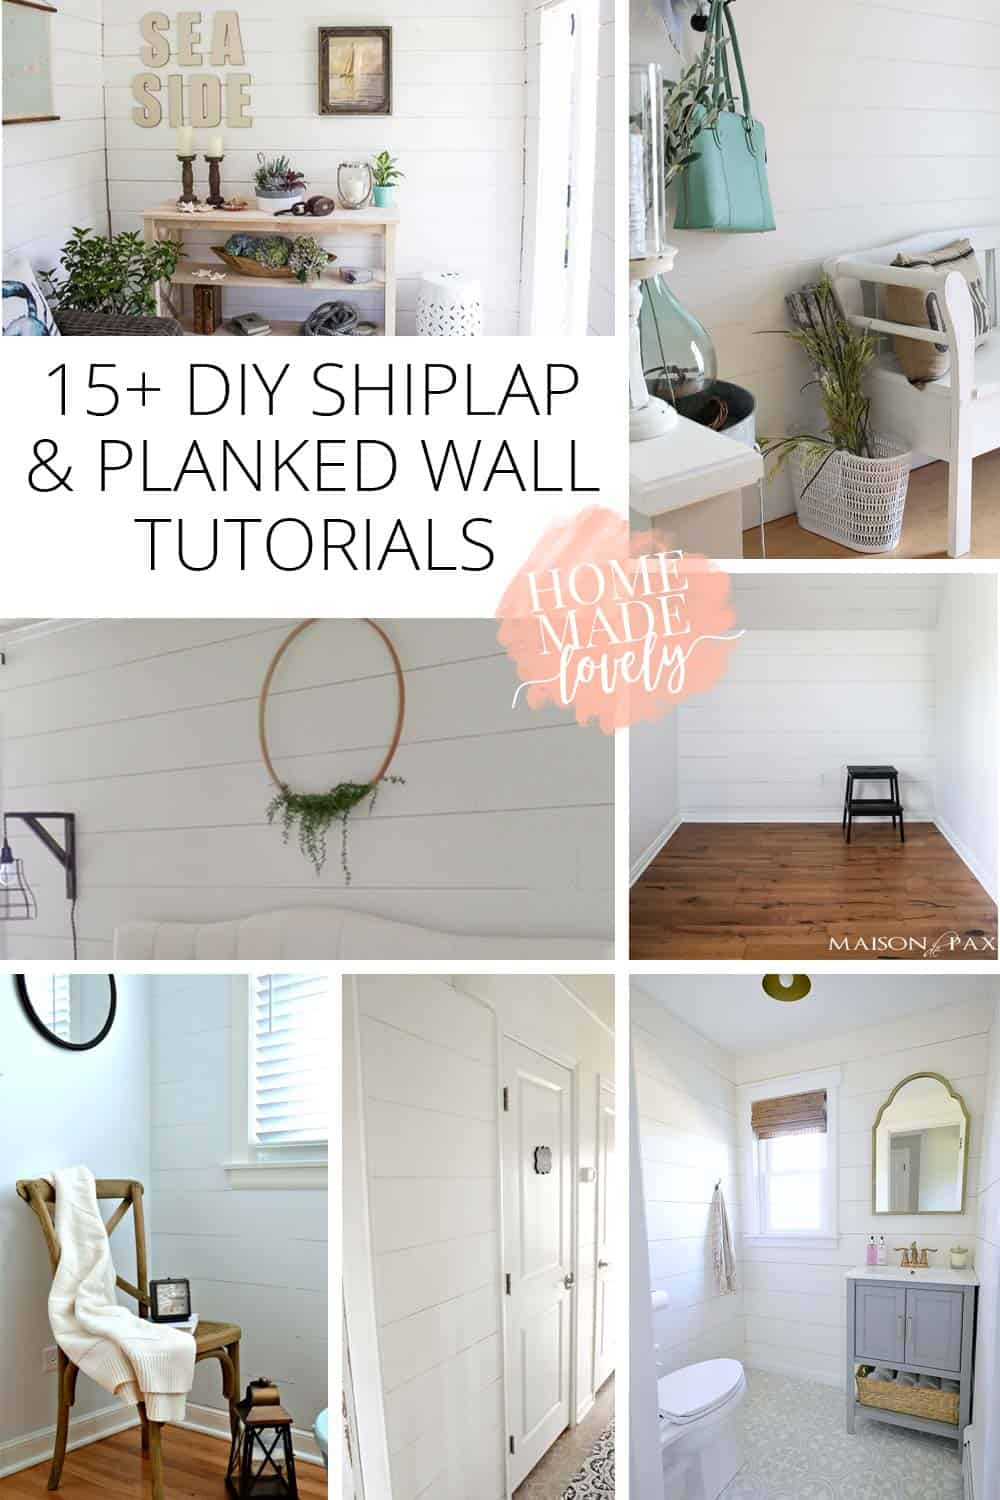 15+ DIY Shiplap and Planked Wall Tutorials You Should See!